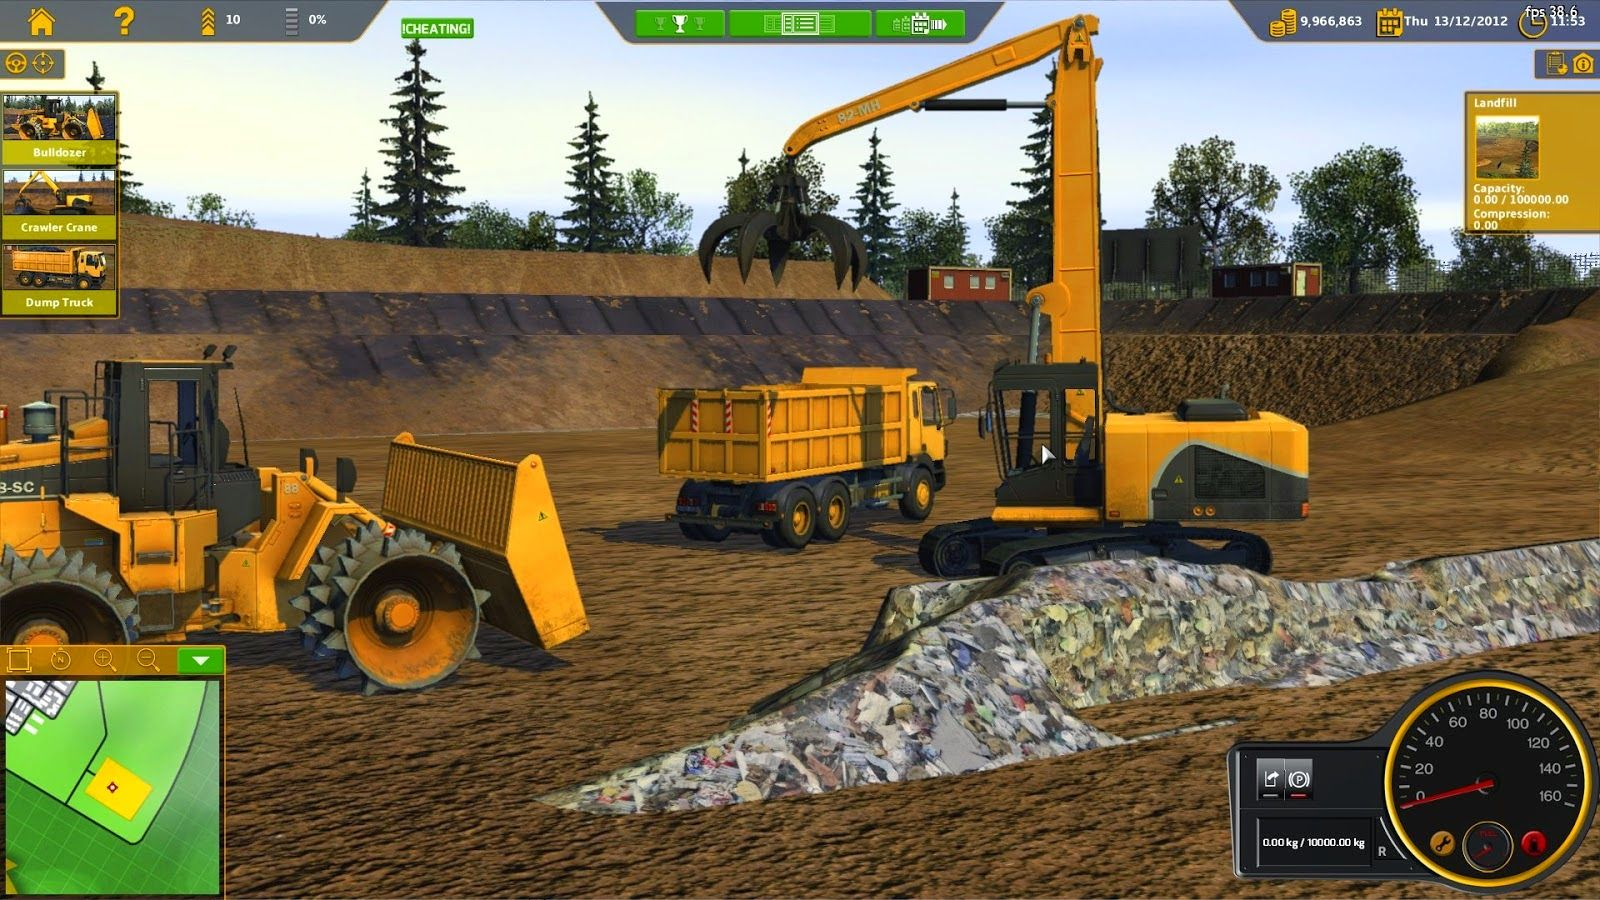 one of the best vehicle simulator game with excavator